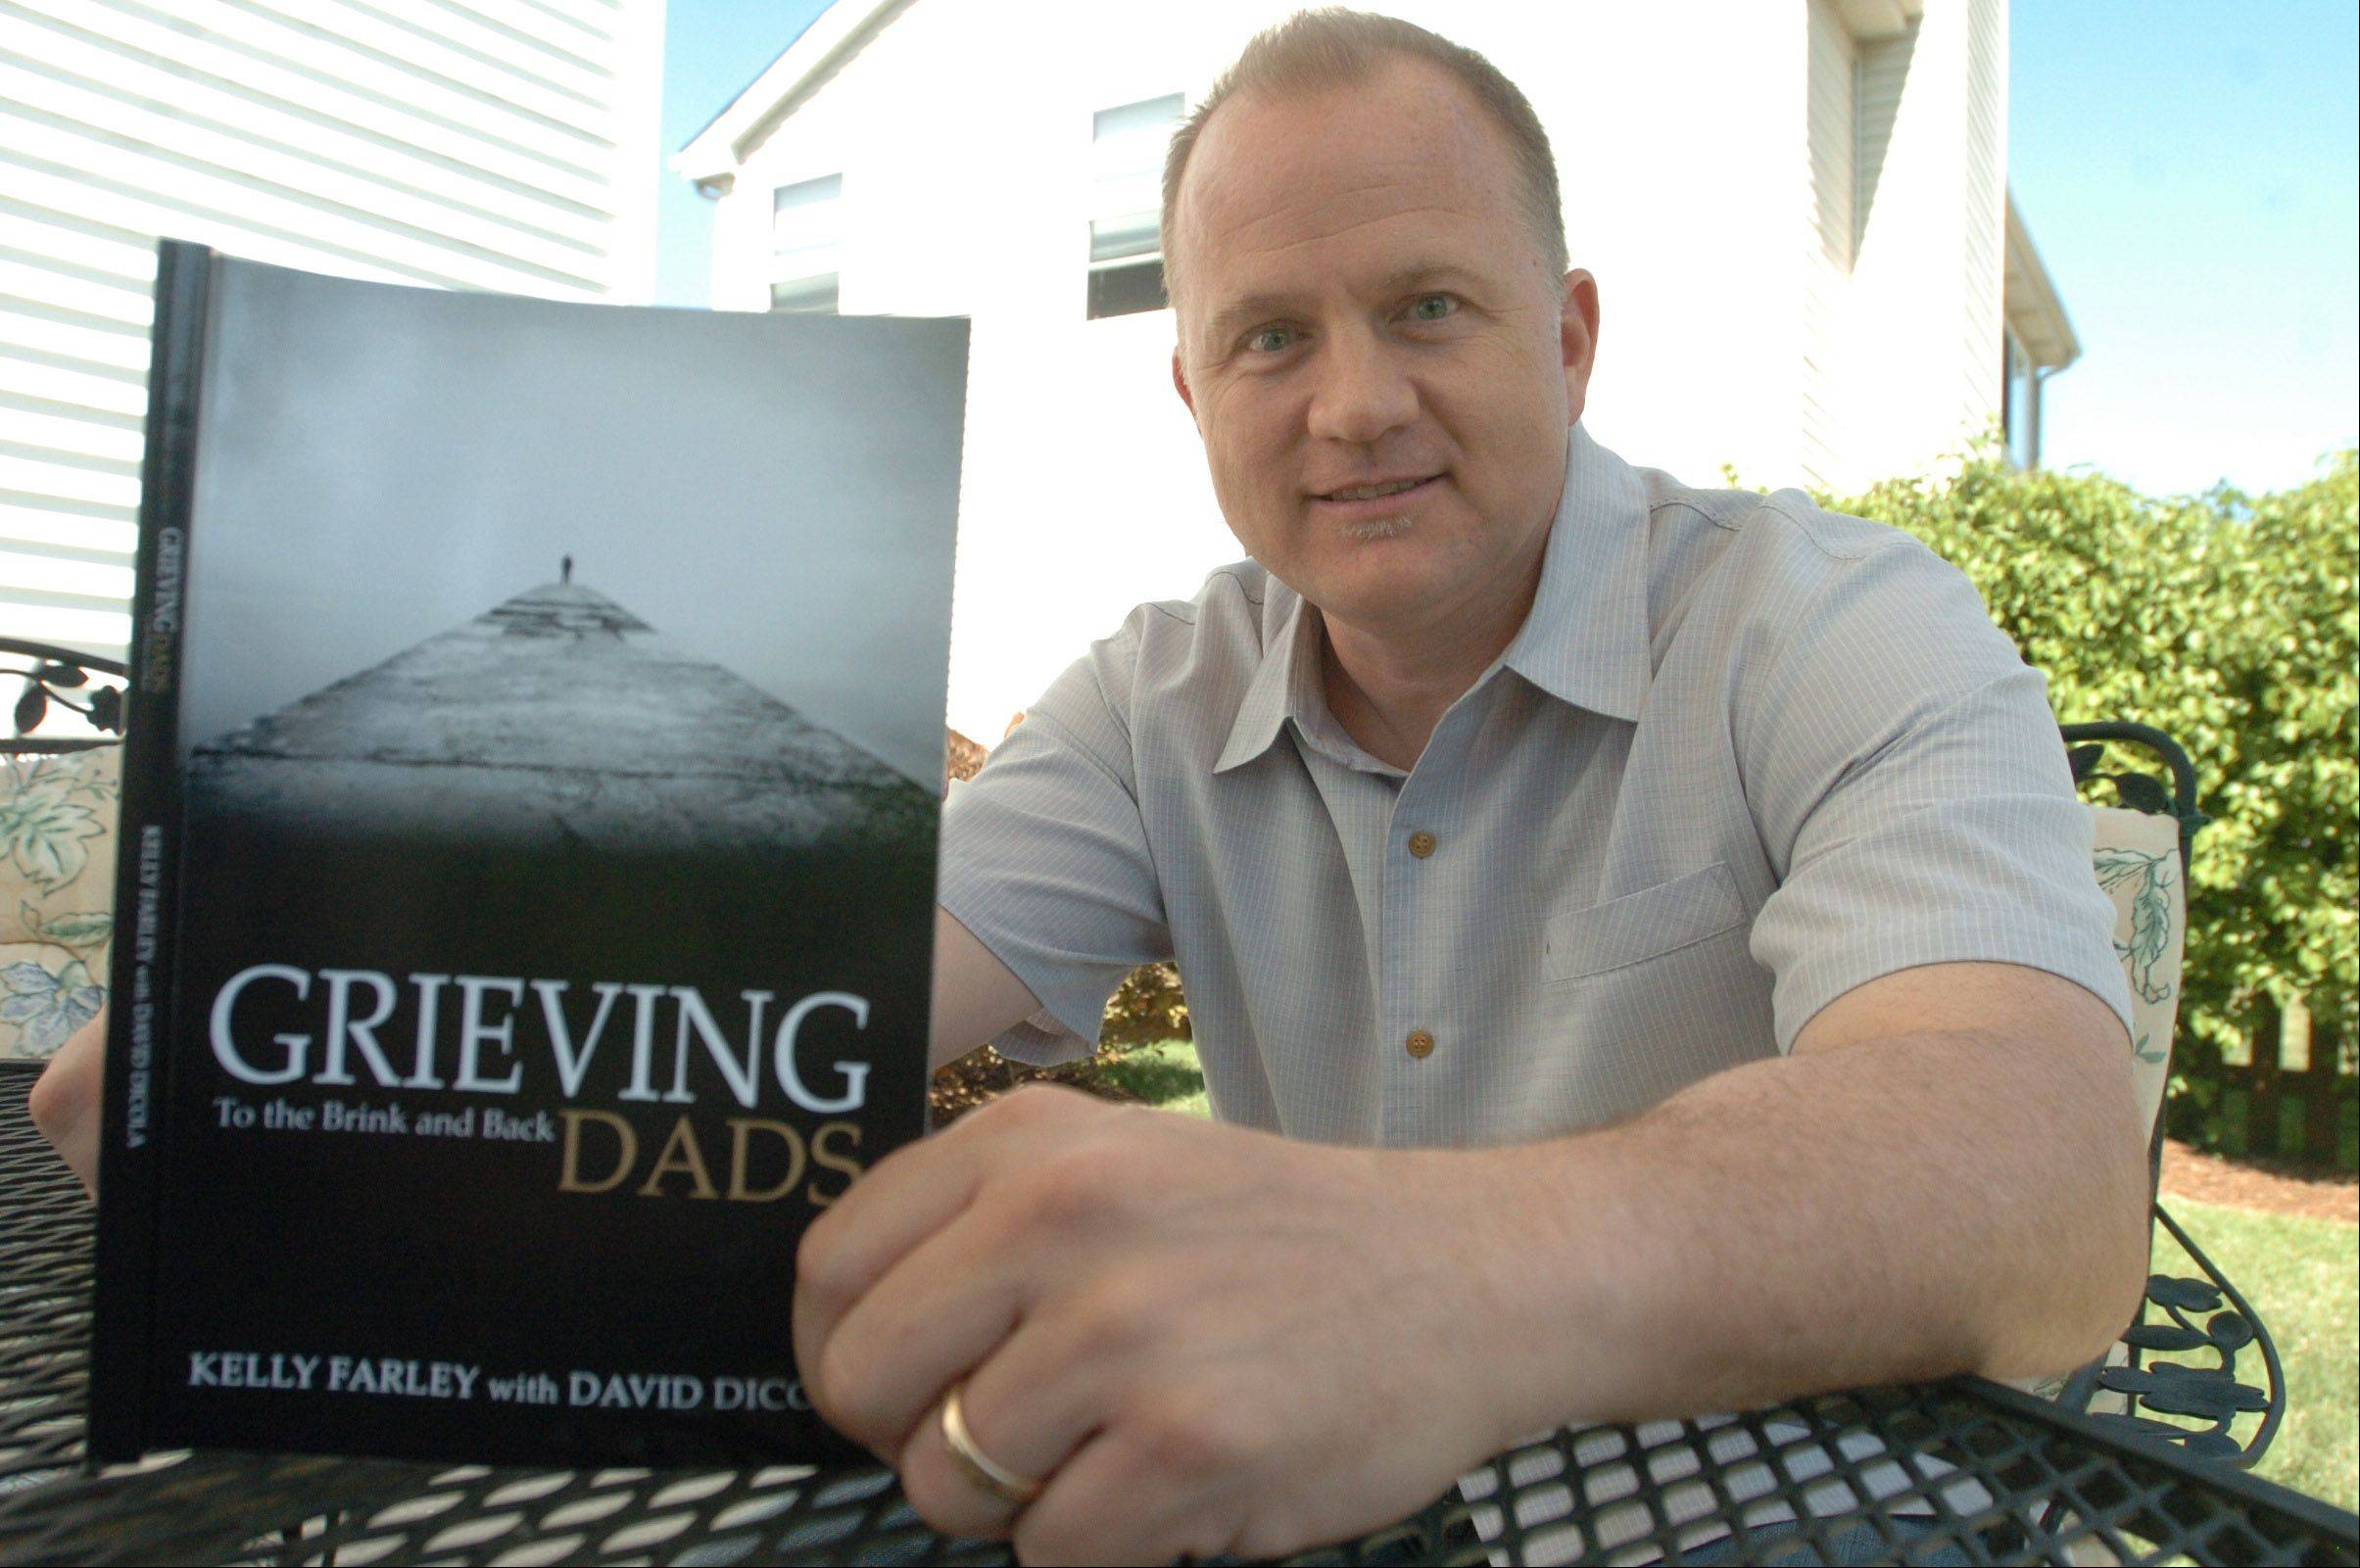 Aurora man's book teaches dads who've lost children how to cope